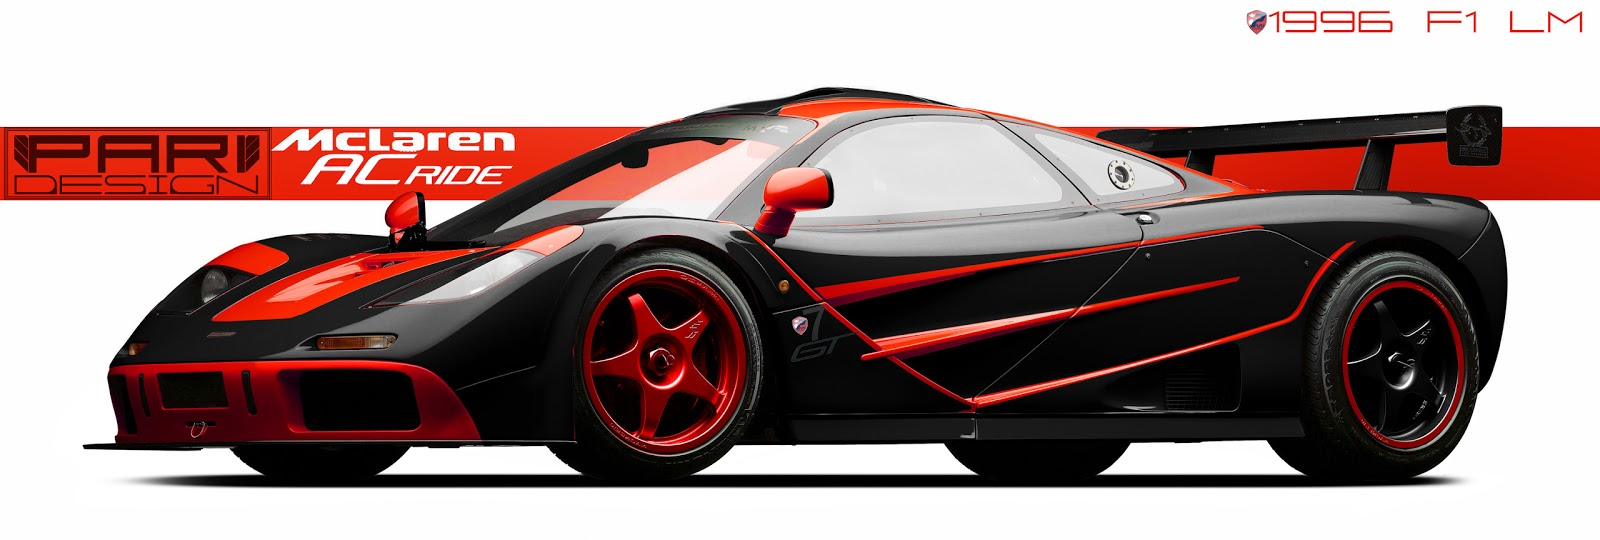 mclaren f1 lm black. now this is a perfect ride the 1996 mclaren f1 lm so how blackred combination on beast looking mclaren lm black